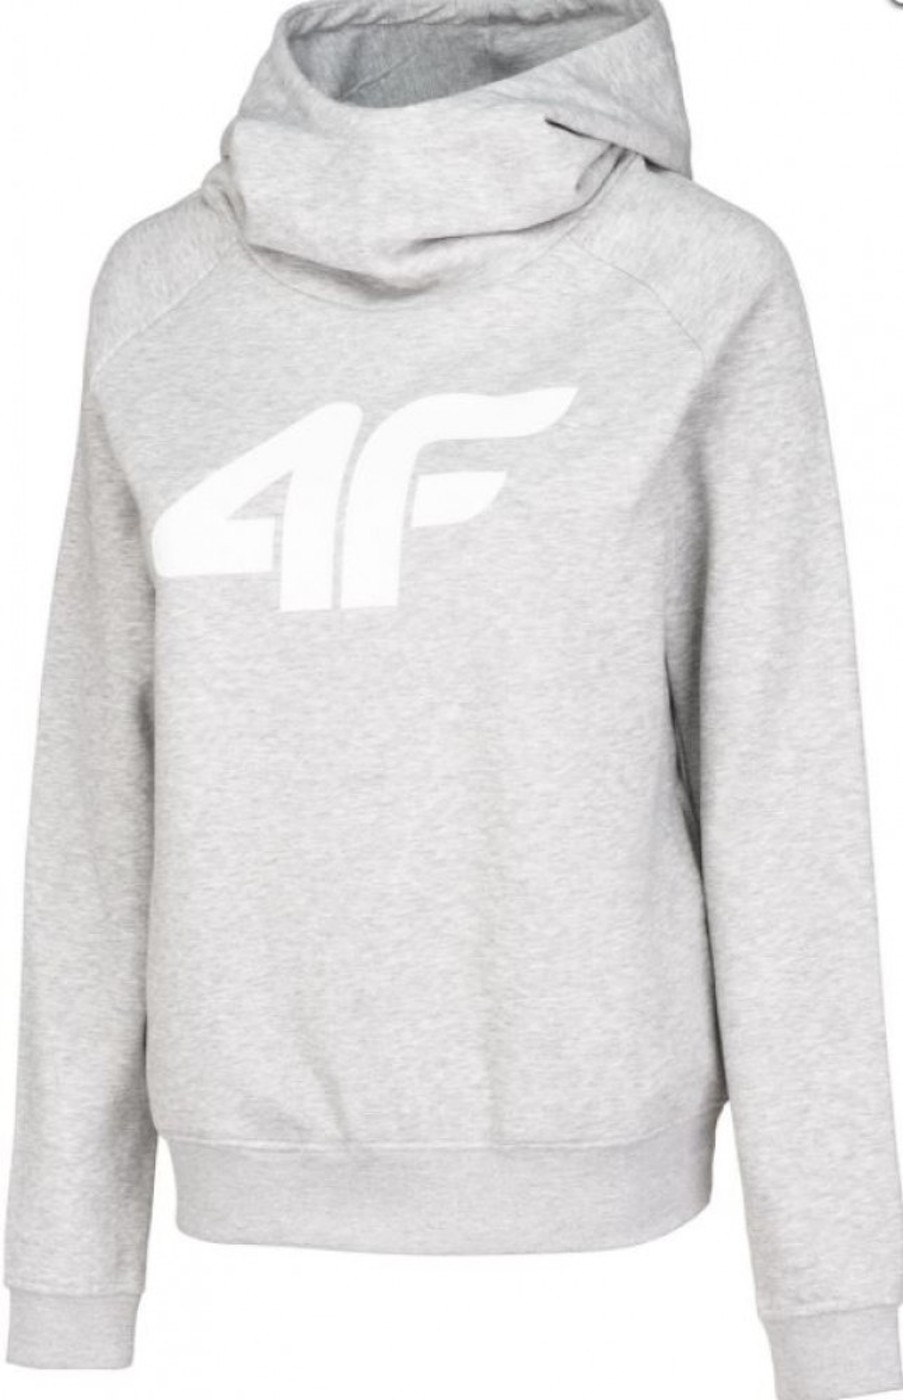 4F Girls Logo Sweater - Kinder